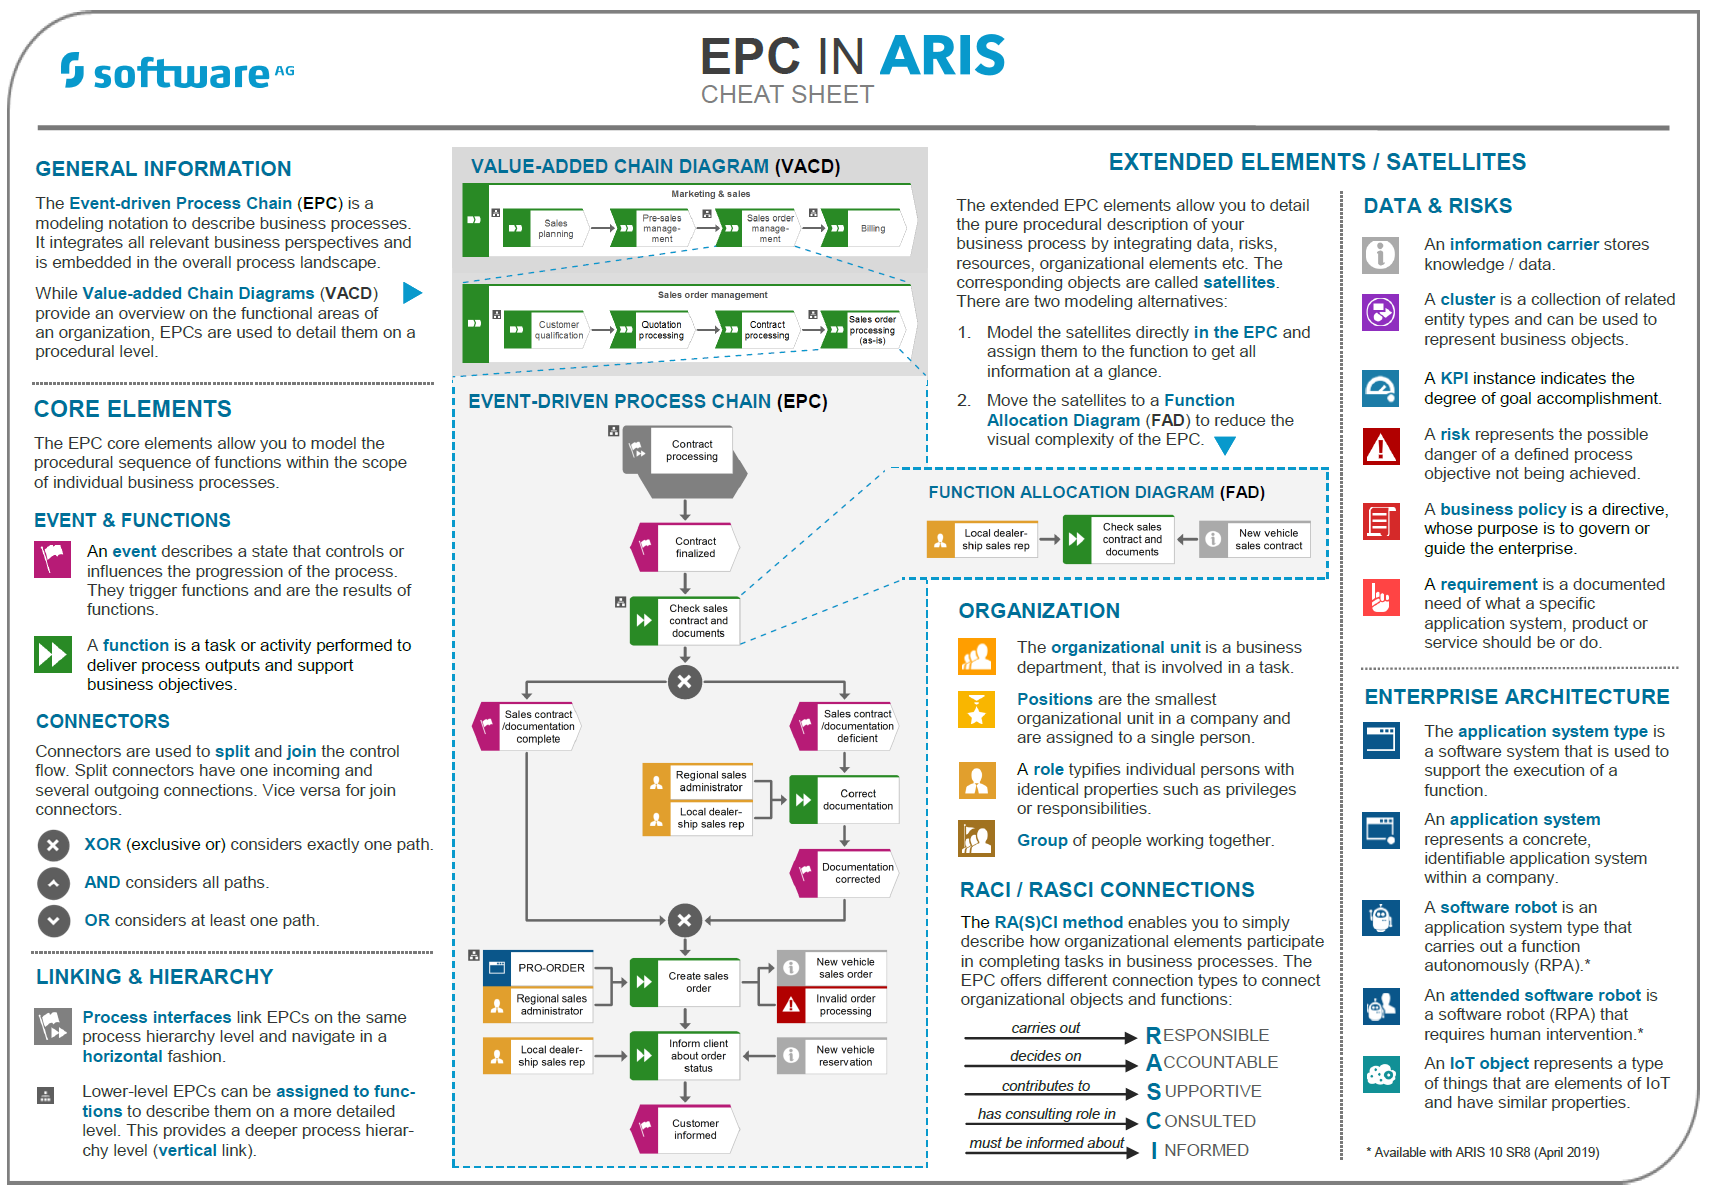 EPC in ARIS cheat sheet